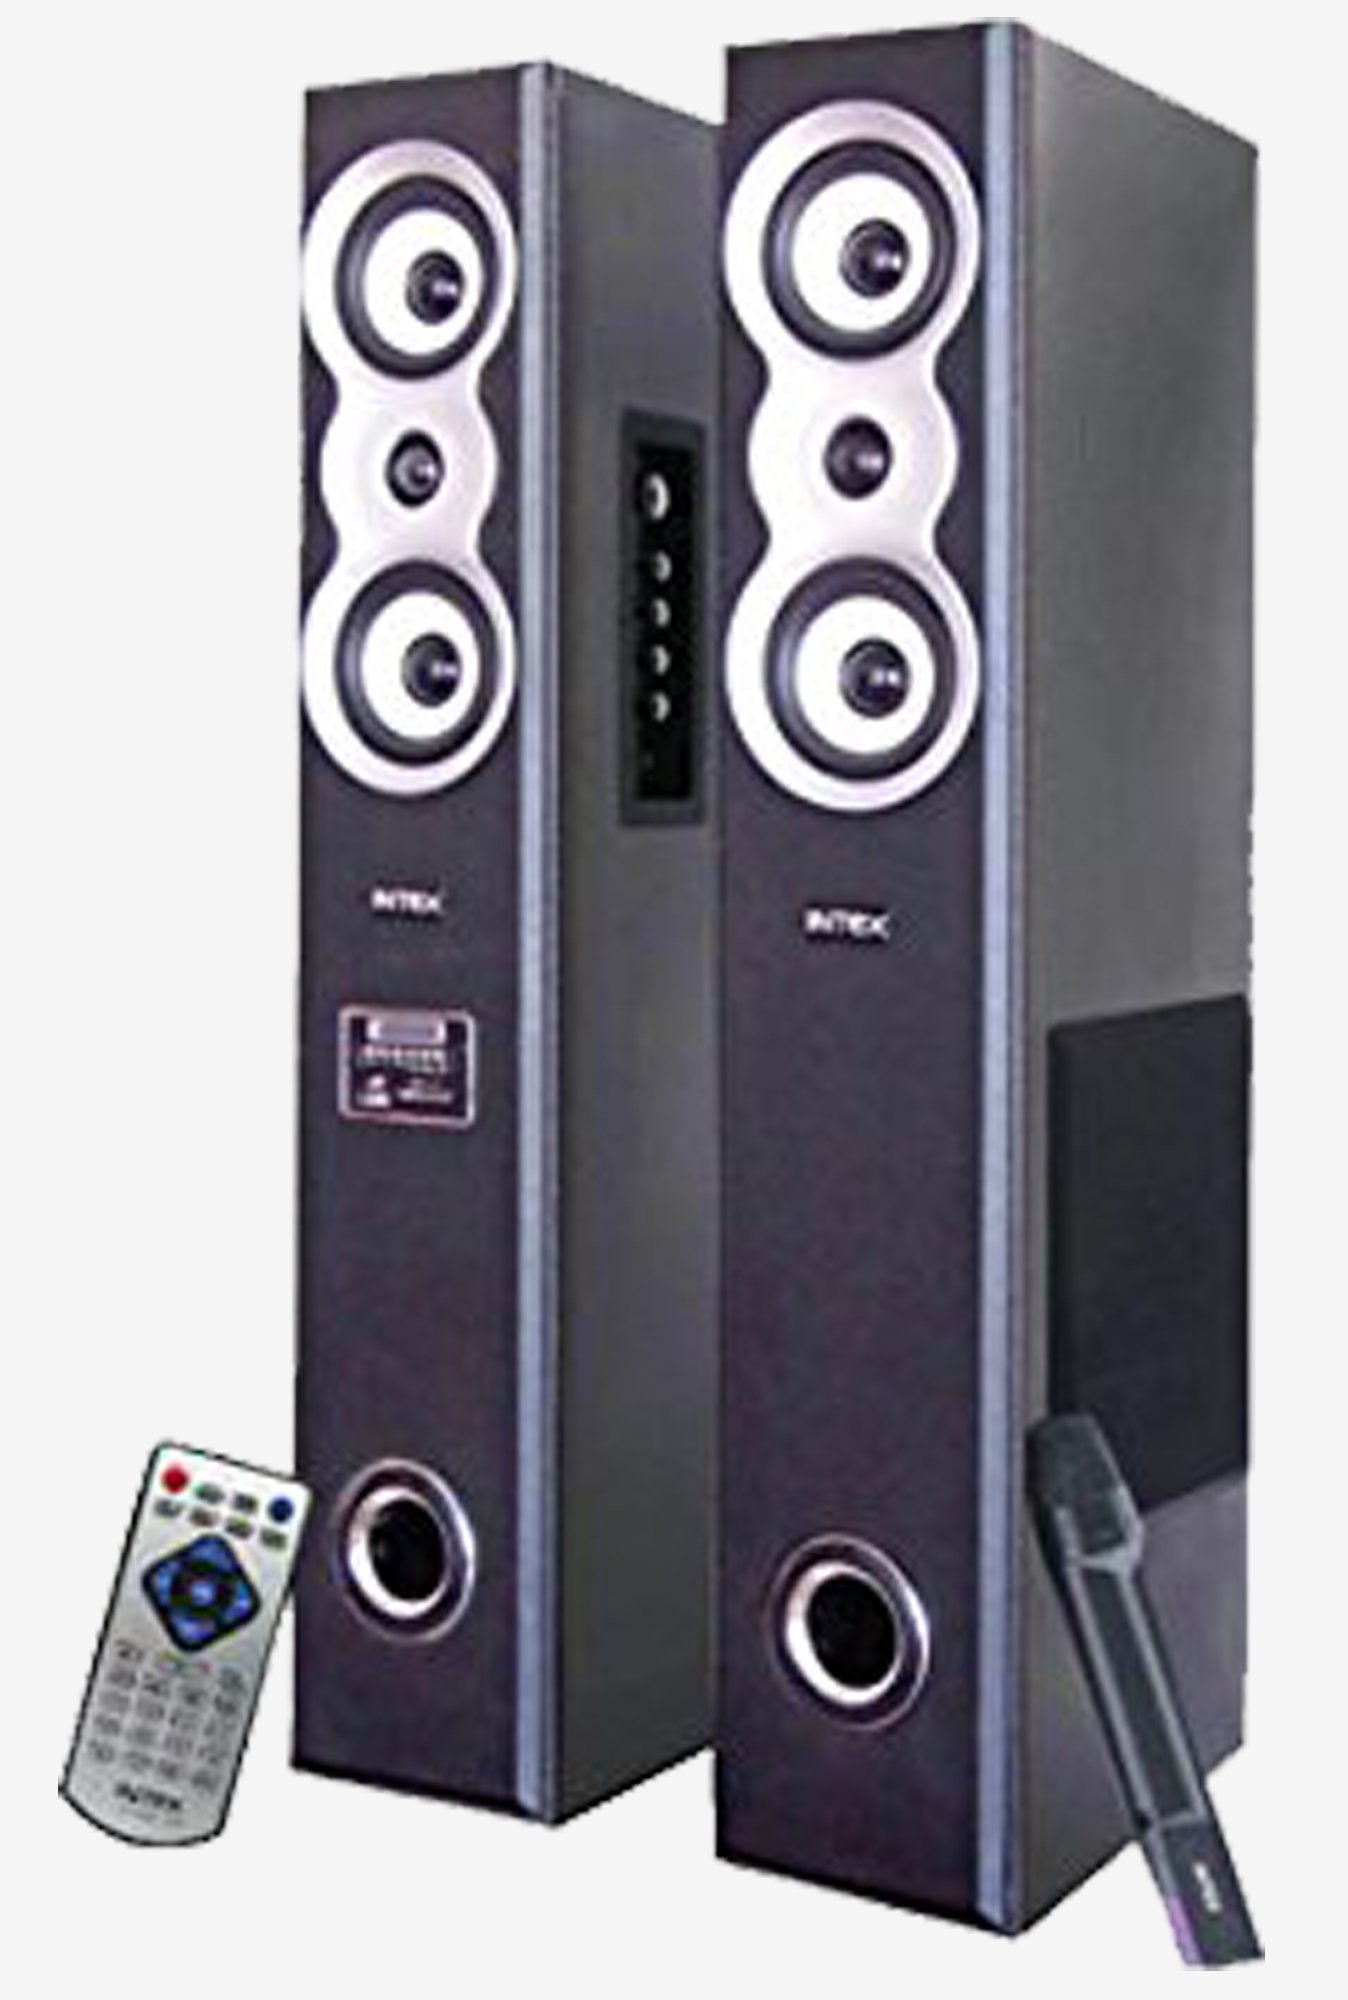 Intex IT-12800 Multimedia Speakers (Black)